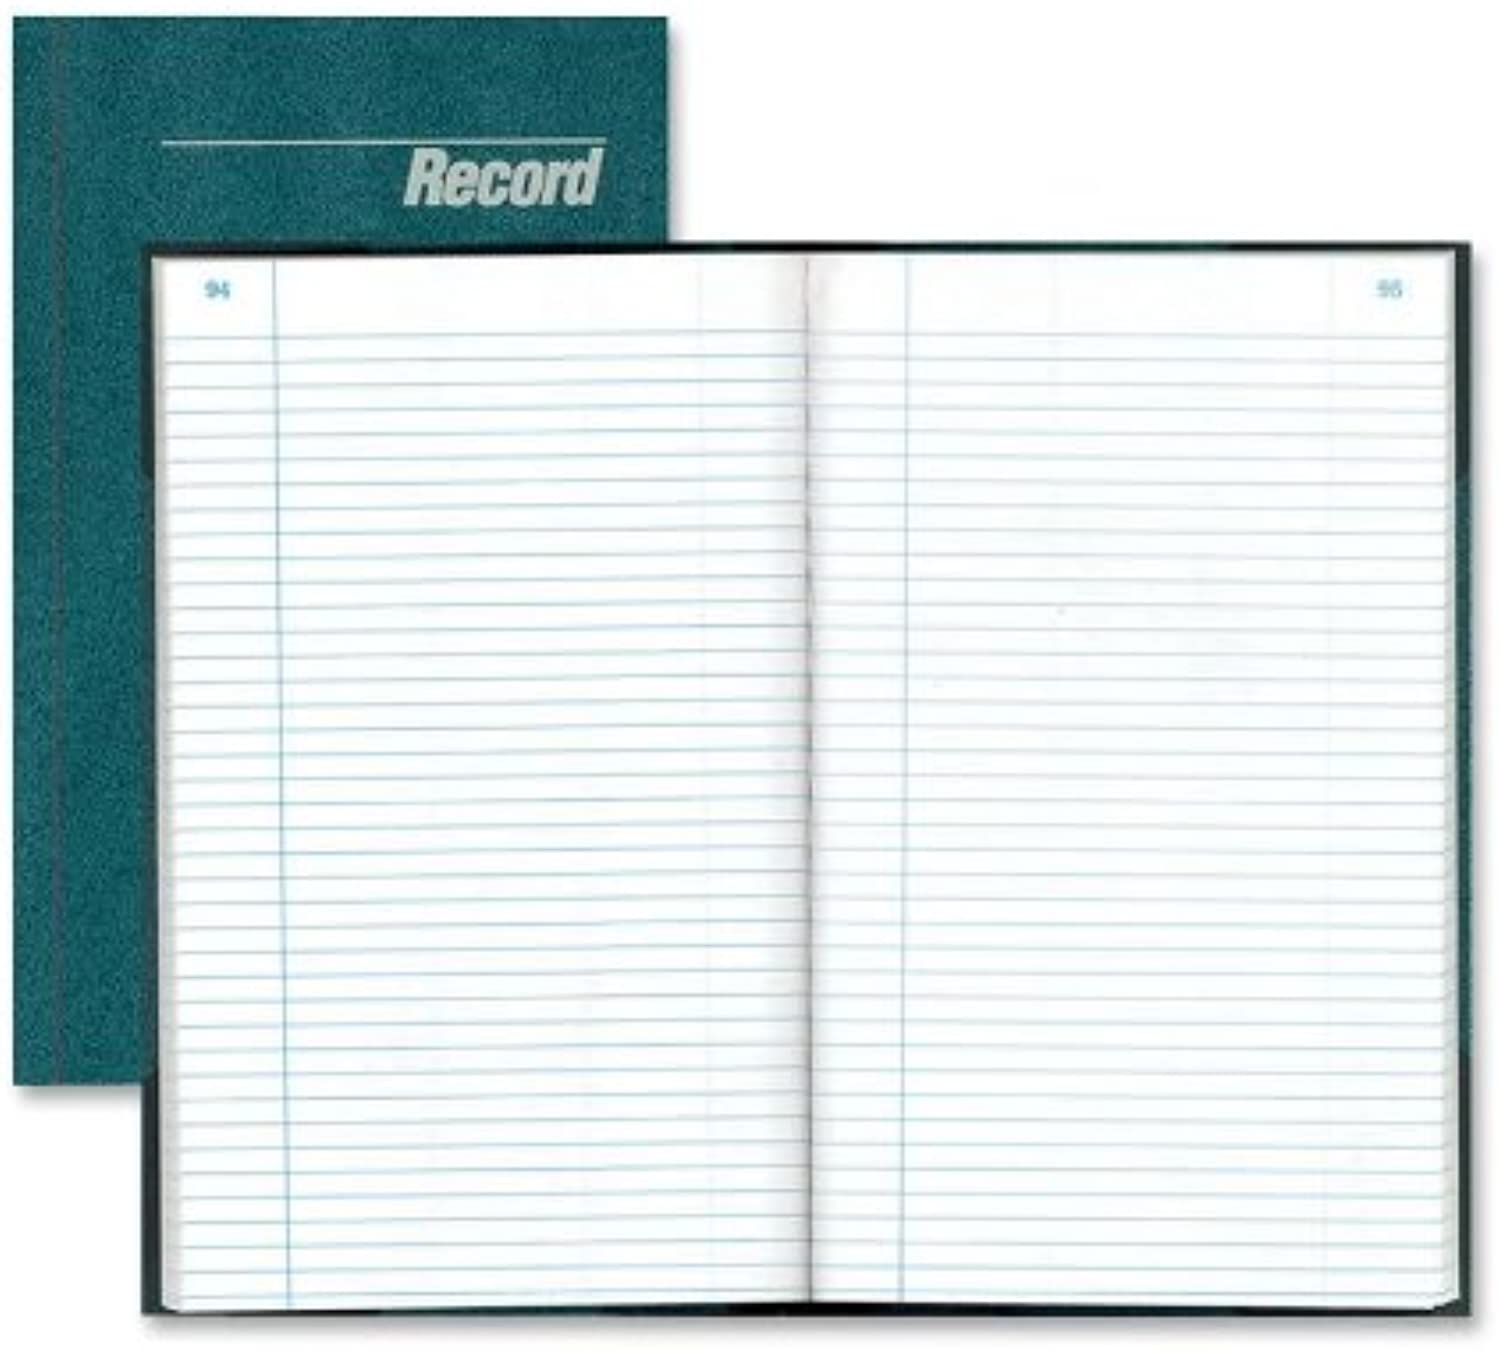 rot56031 – rotiform Granit Park Record Book Book Book B004Y9PVGG | Neues Produkt  940152